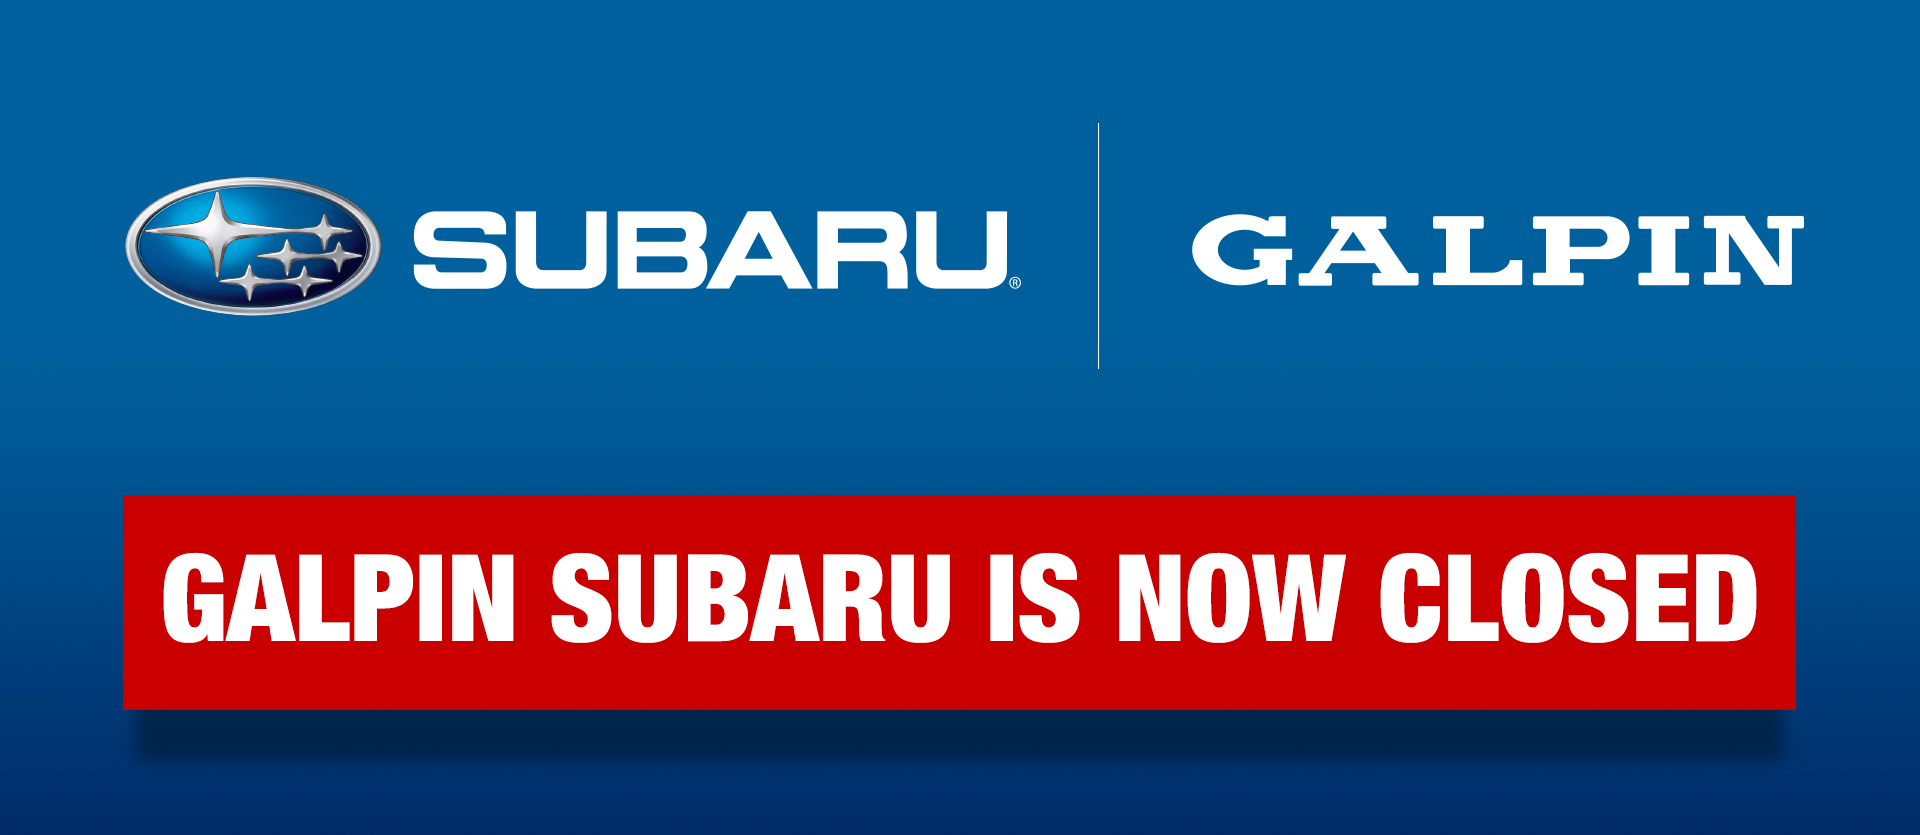 Any Inconvenience This May Cause You And Are Truly Reciative Of Your Loyalty We Look Forward To Serving In The Future Find Local Subaru